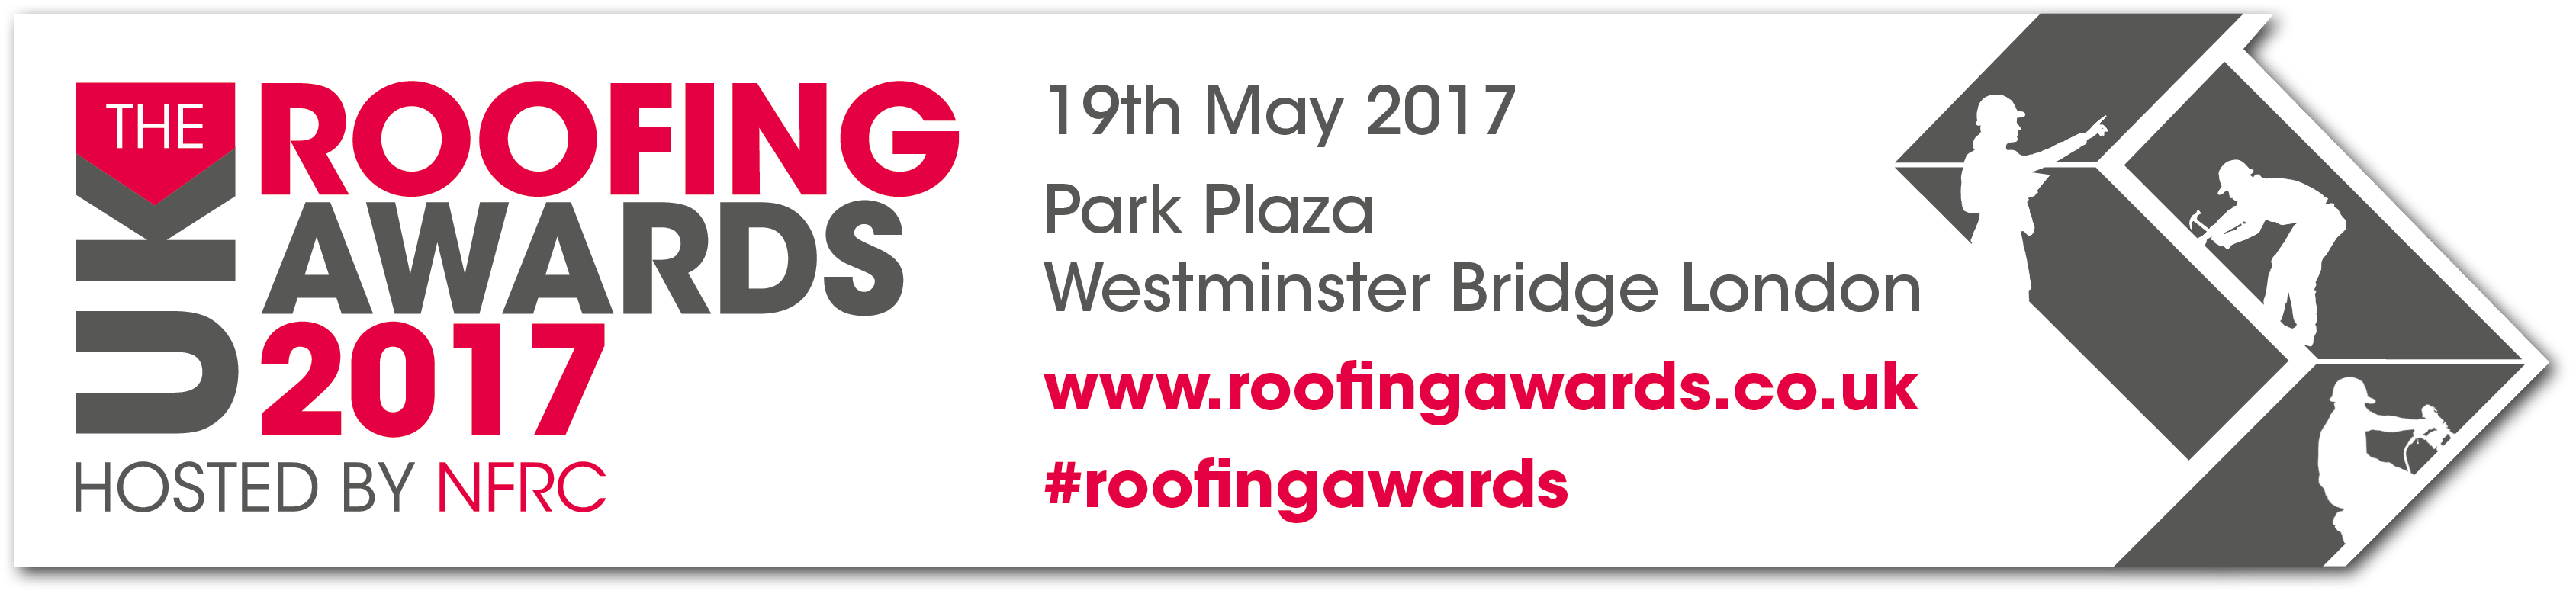 Roofing Awards Banner